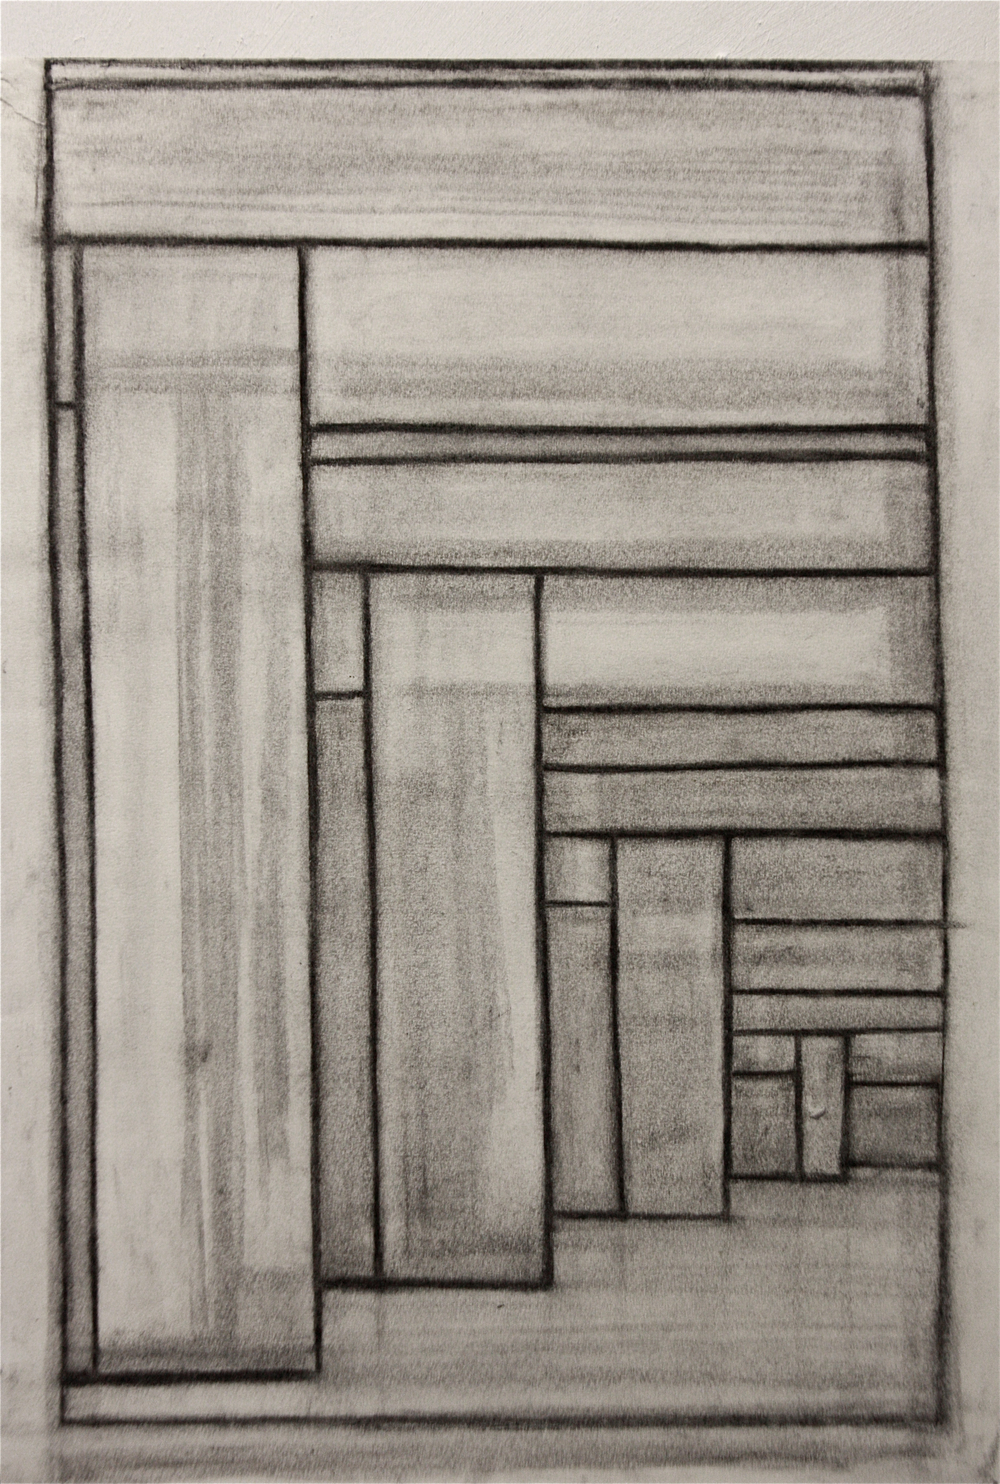 PS002, Charcoal on paper, 53.5x40cm